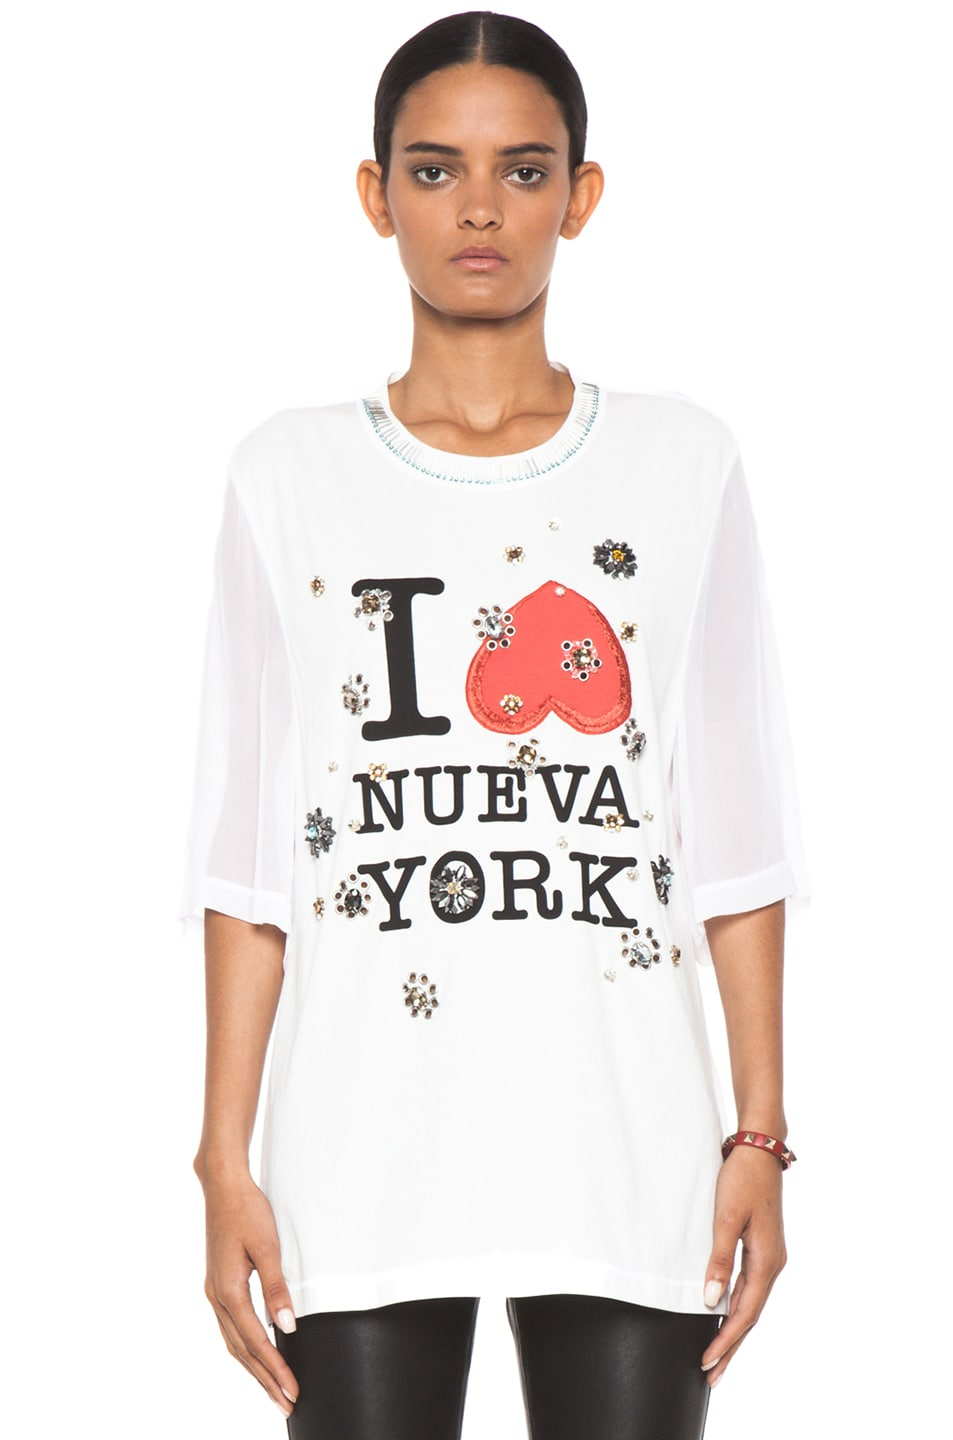 Image 1 of 3.1 phillip lim Nueva York Floral Eyelet Embroidery Tee in Antique White